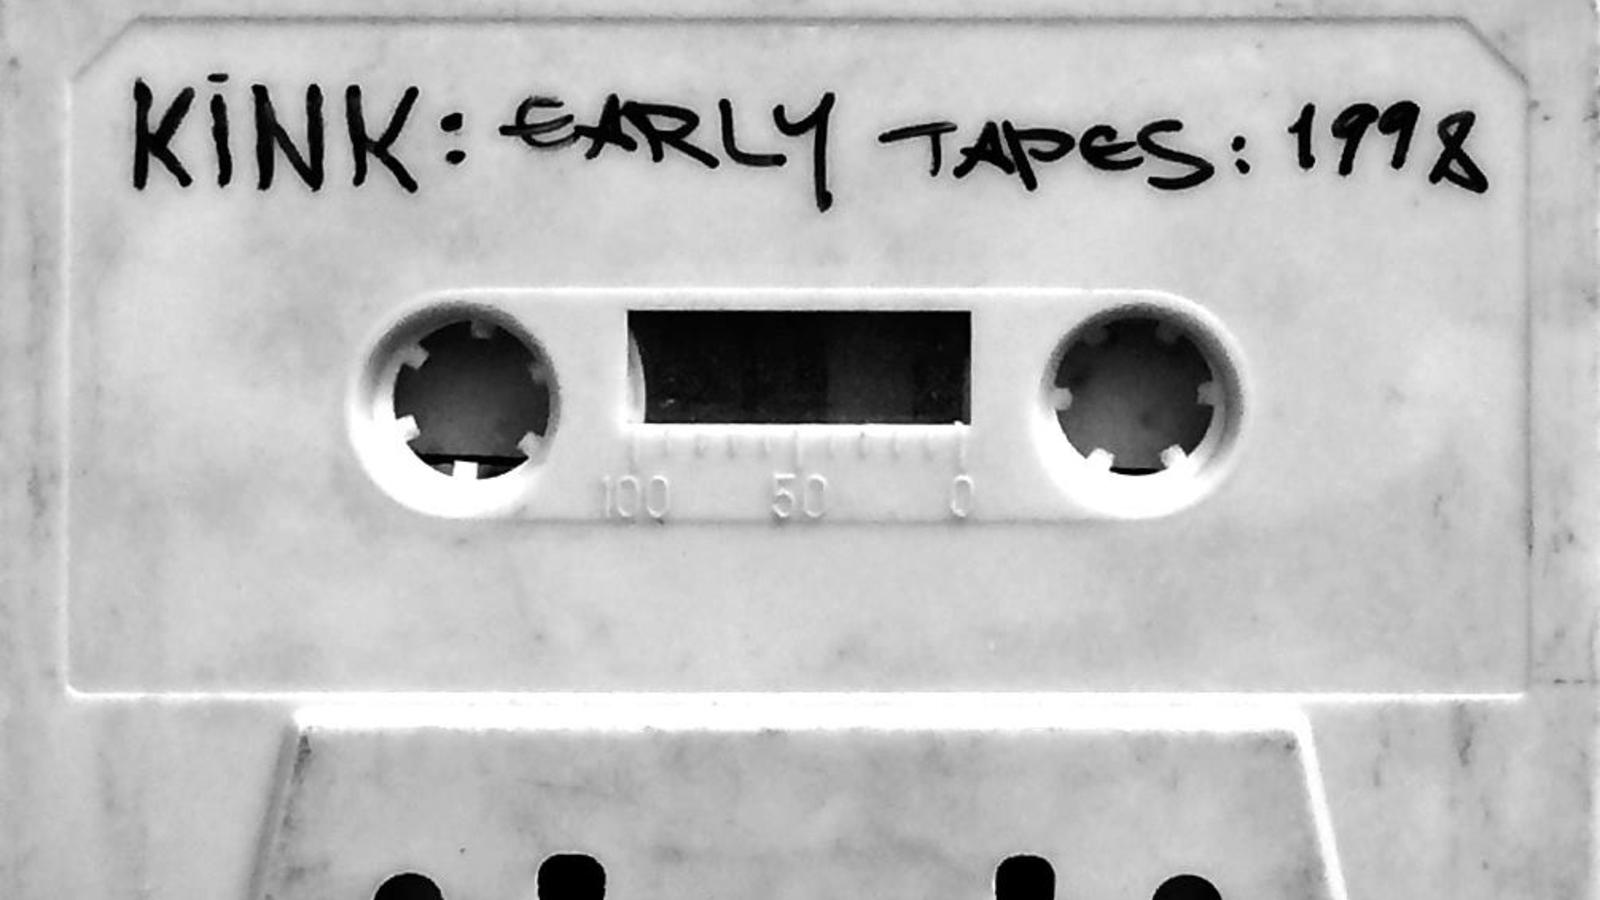 Kink Early Tapes